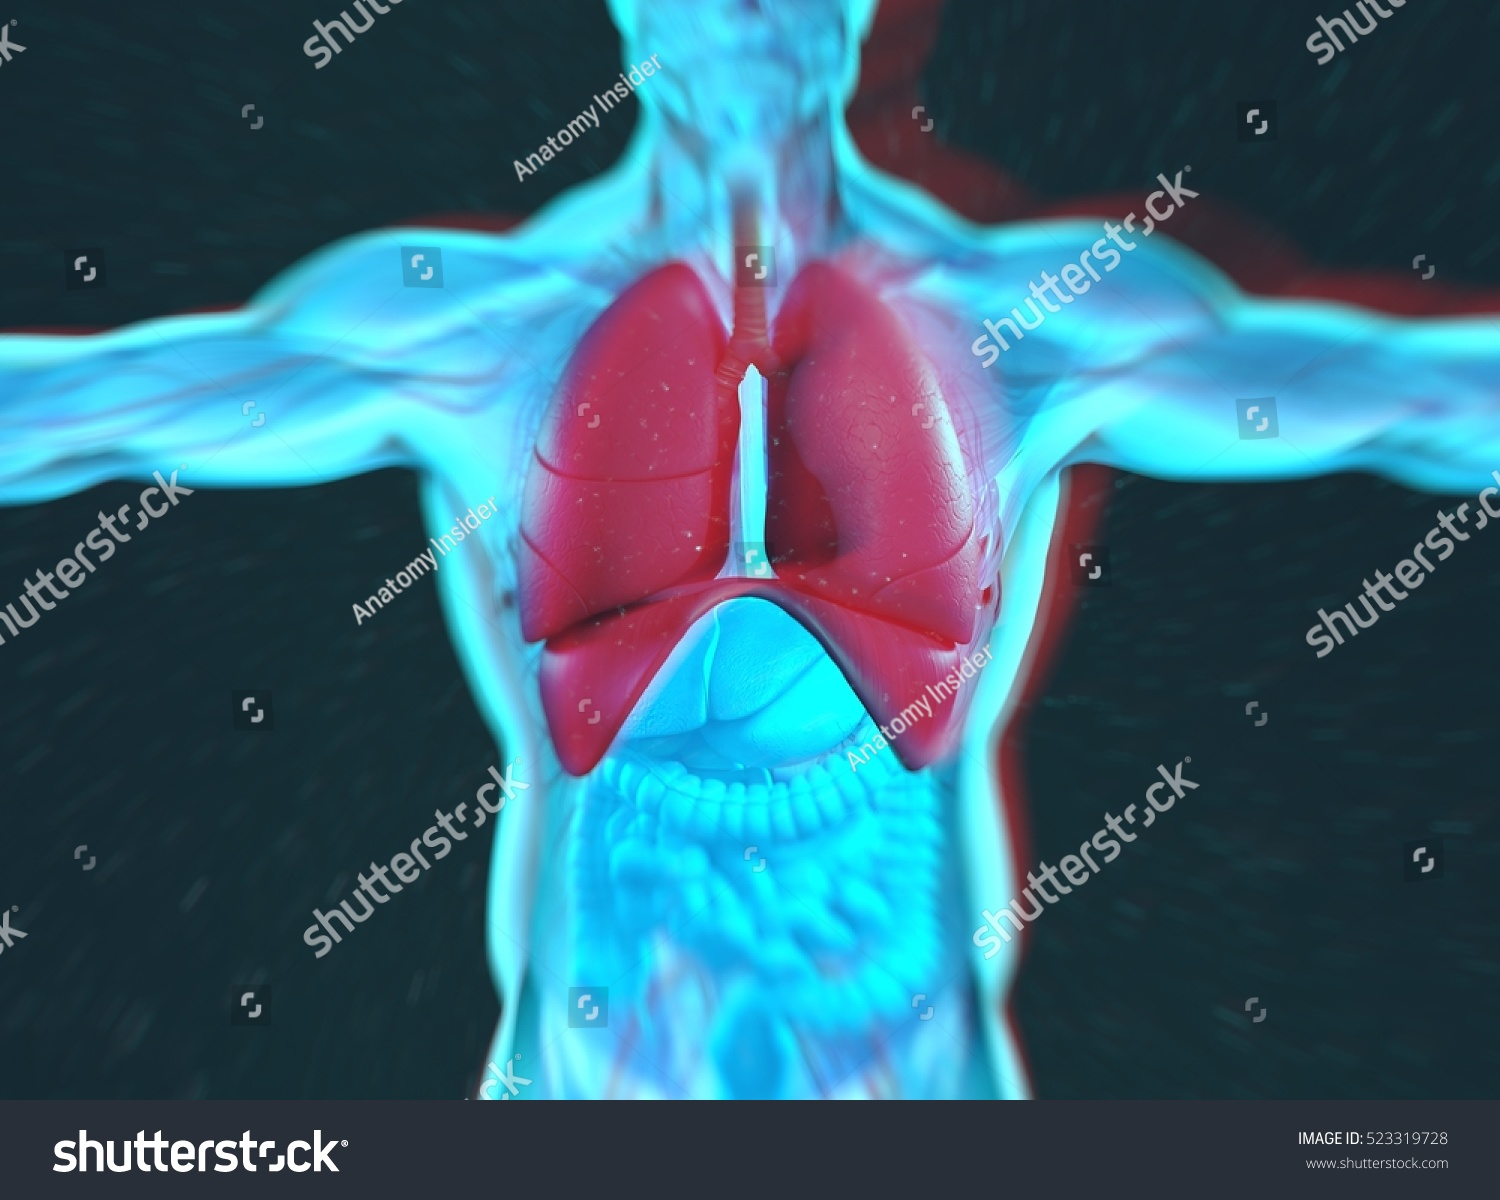 Human Anatomy Lungs Lung Cancer Disease Stock Illustration 523319728 ...